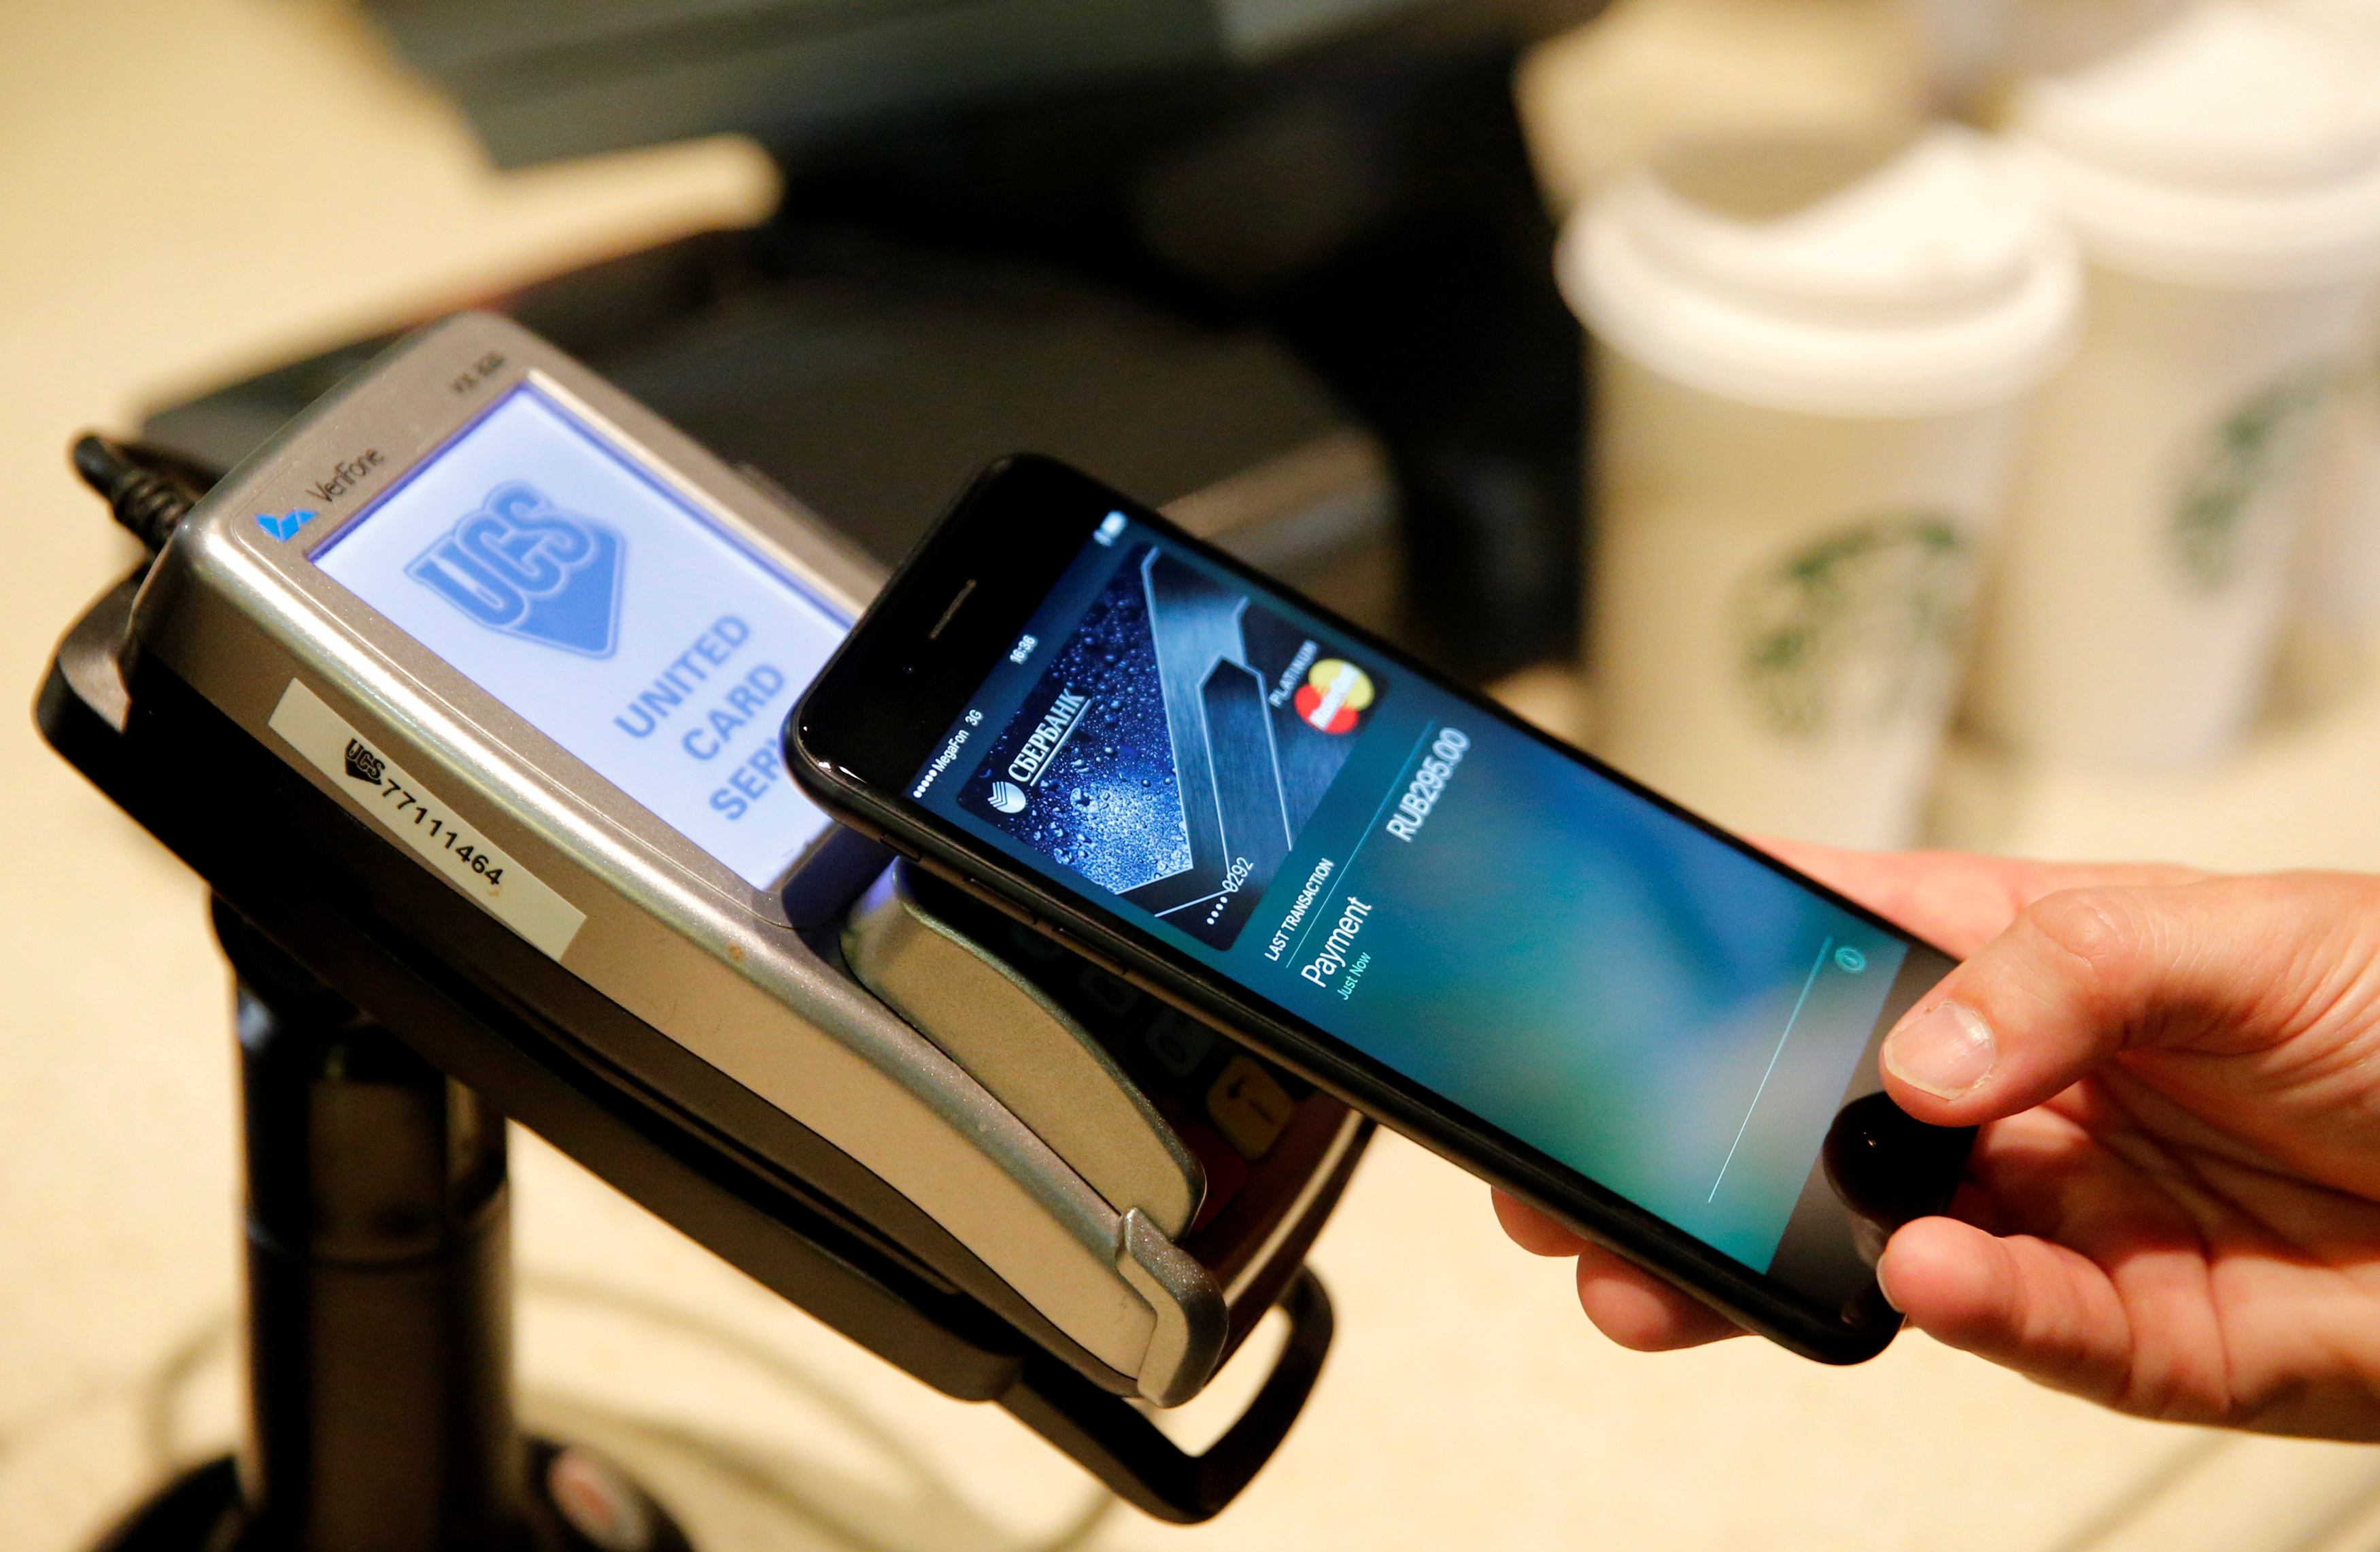 A man uses an iPhone 7 smartphone to demonstrate the mobile payment service Apple Pay at a cafe in Moscow, Russia, October 3, 2016. Picture taken October 3, 2016.   REUTERS/Maxim Zmeyev/File Photo